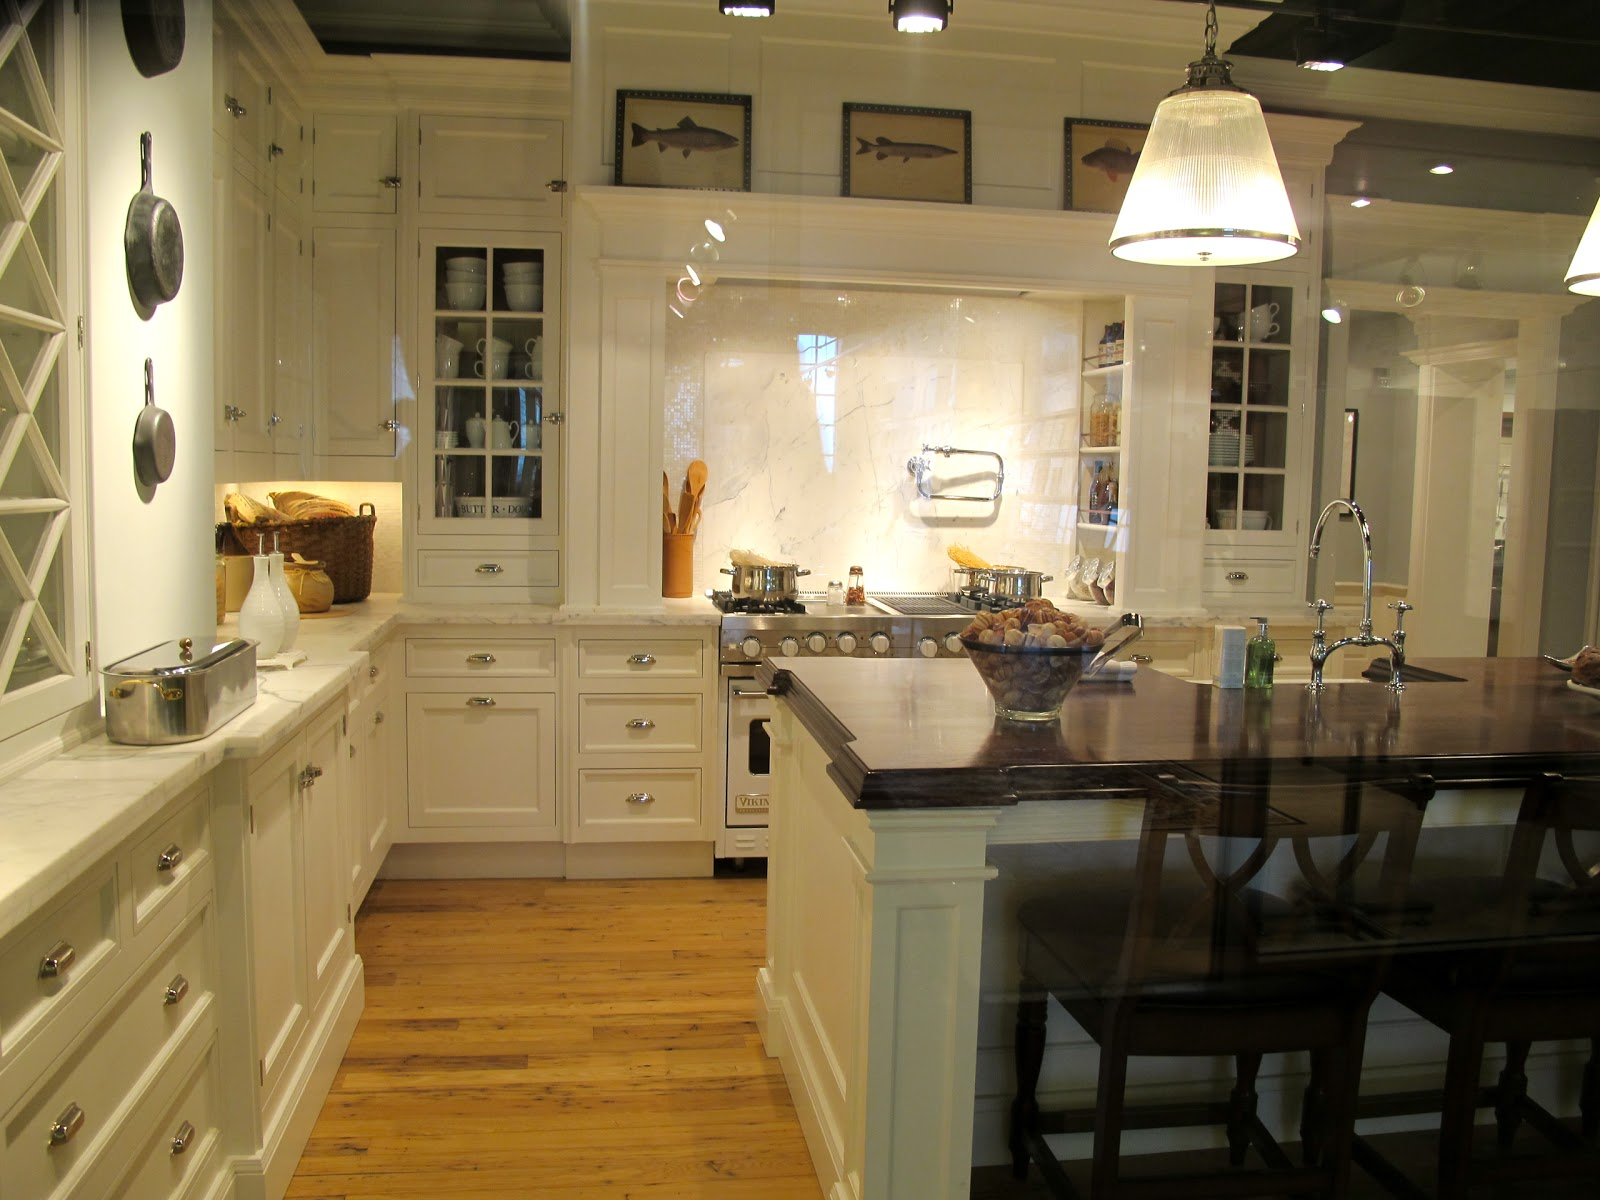 Jenny steffens hobick kitchens the most amazing kitchens kitchen inspiration for classic - Kitchen images with white cabinets ...